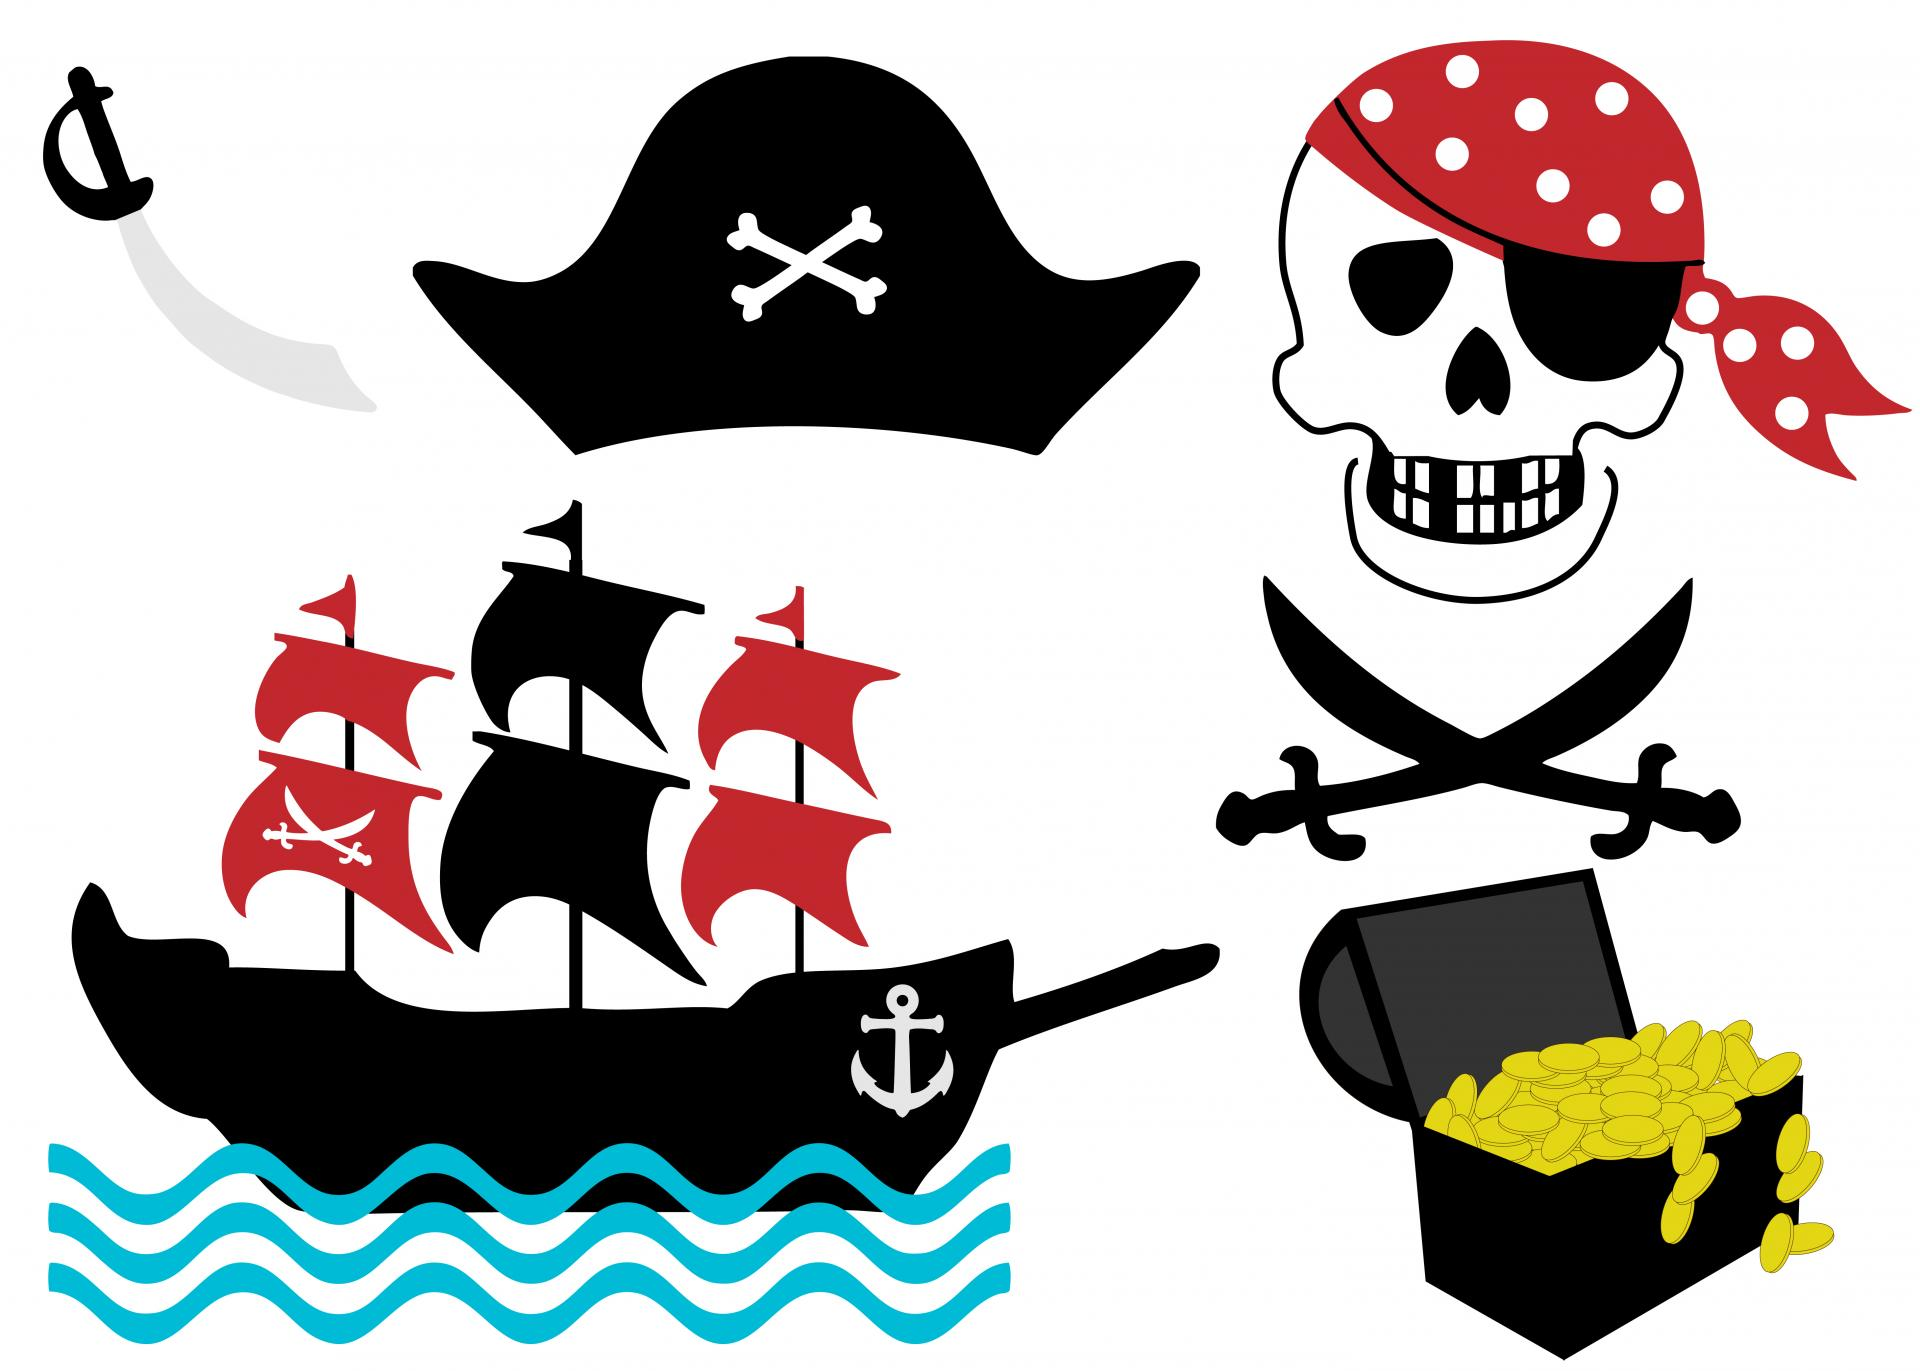 Pirate ship pirate clip art free stock photo public domain pictures